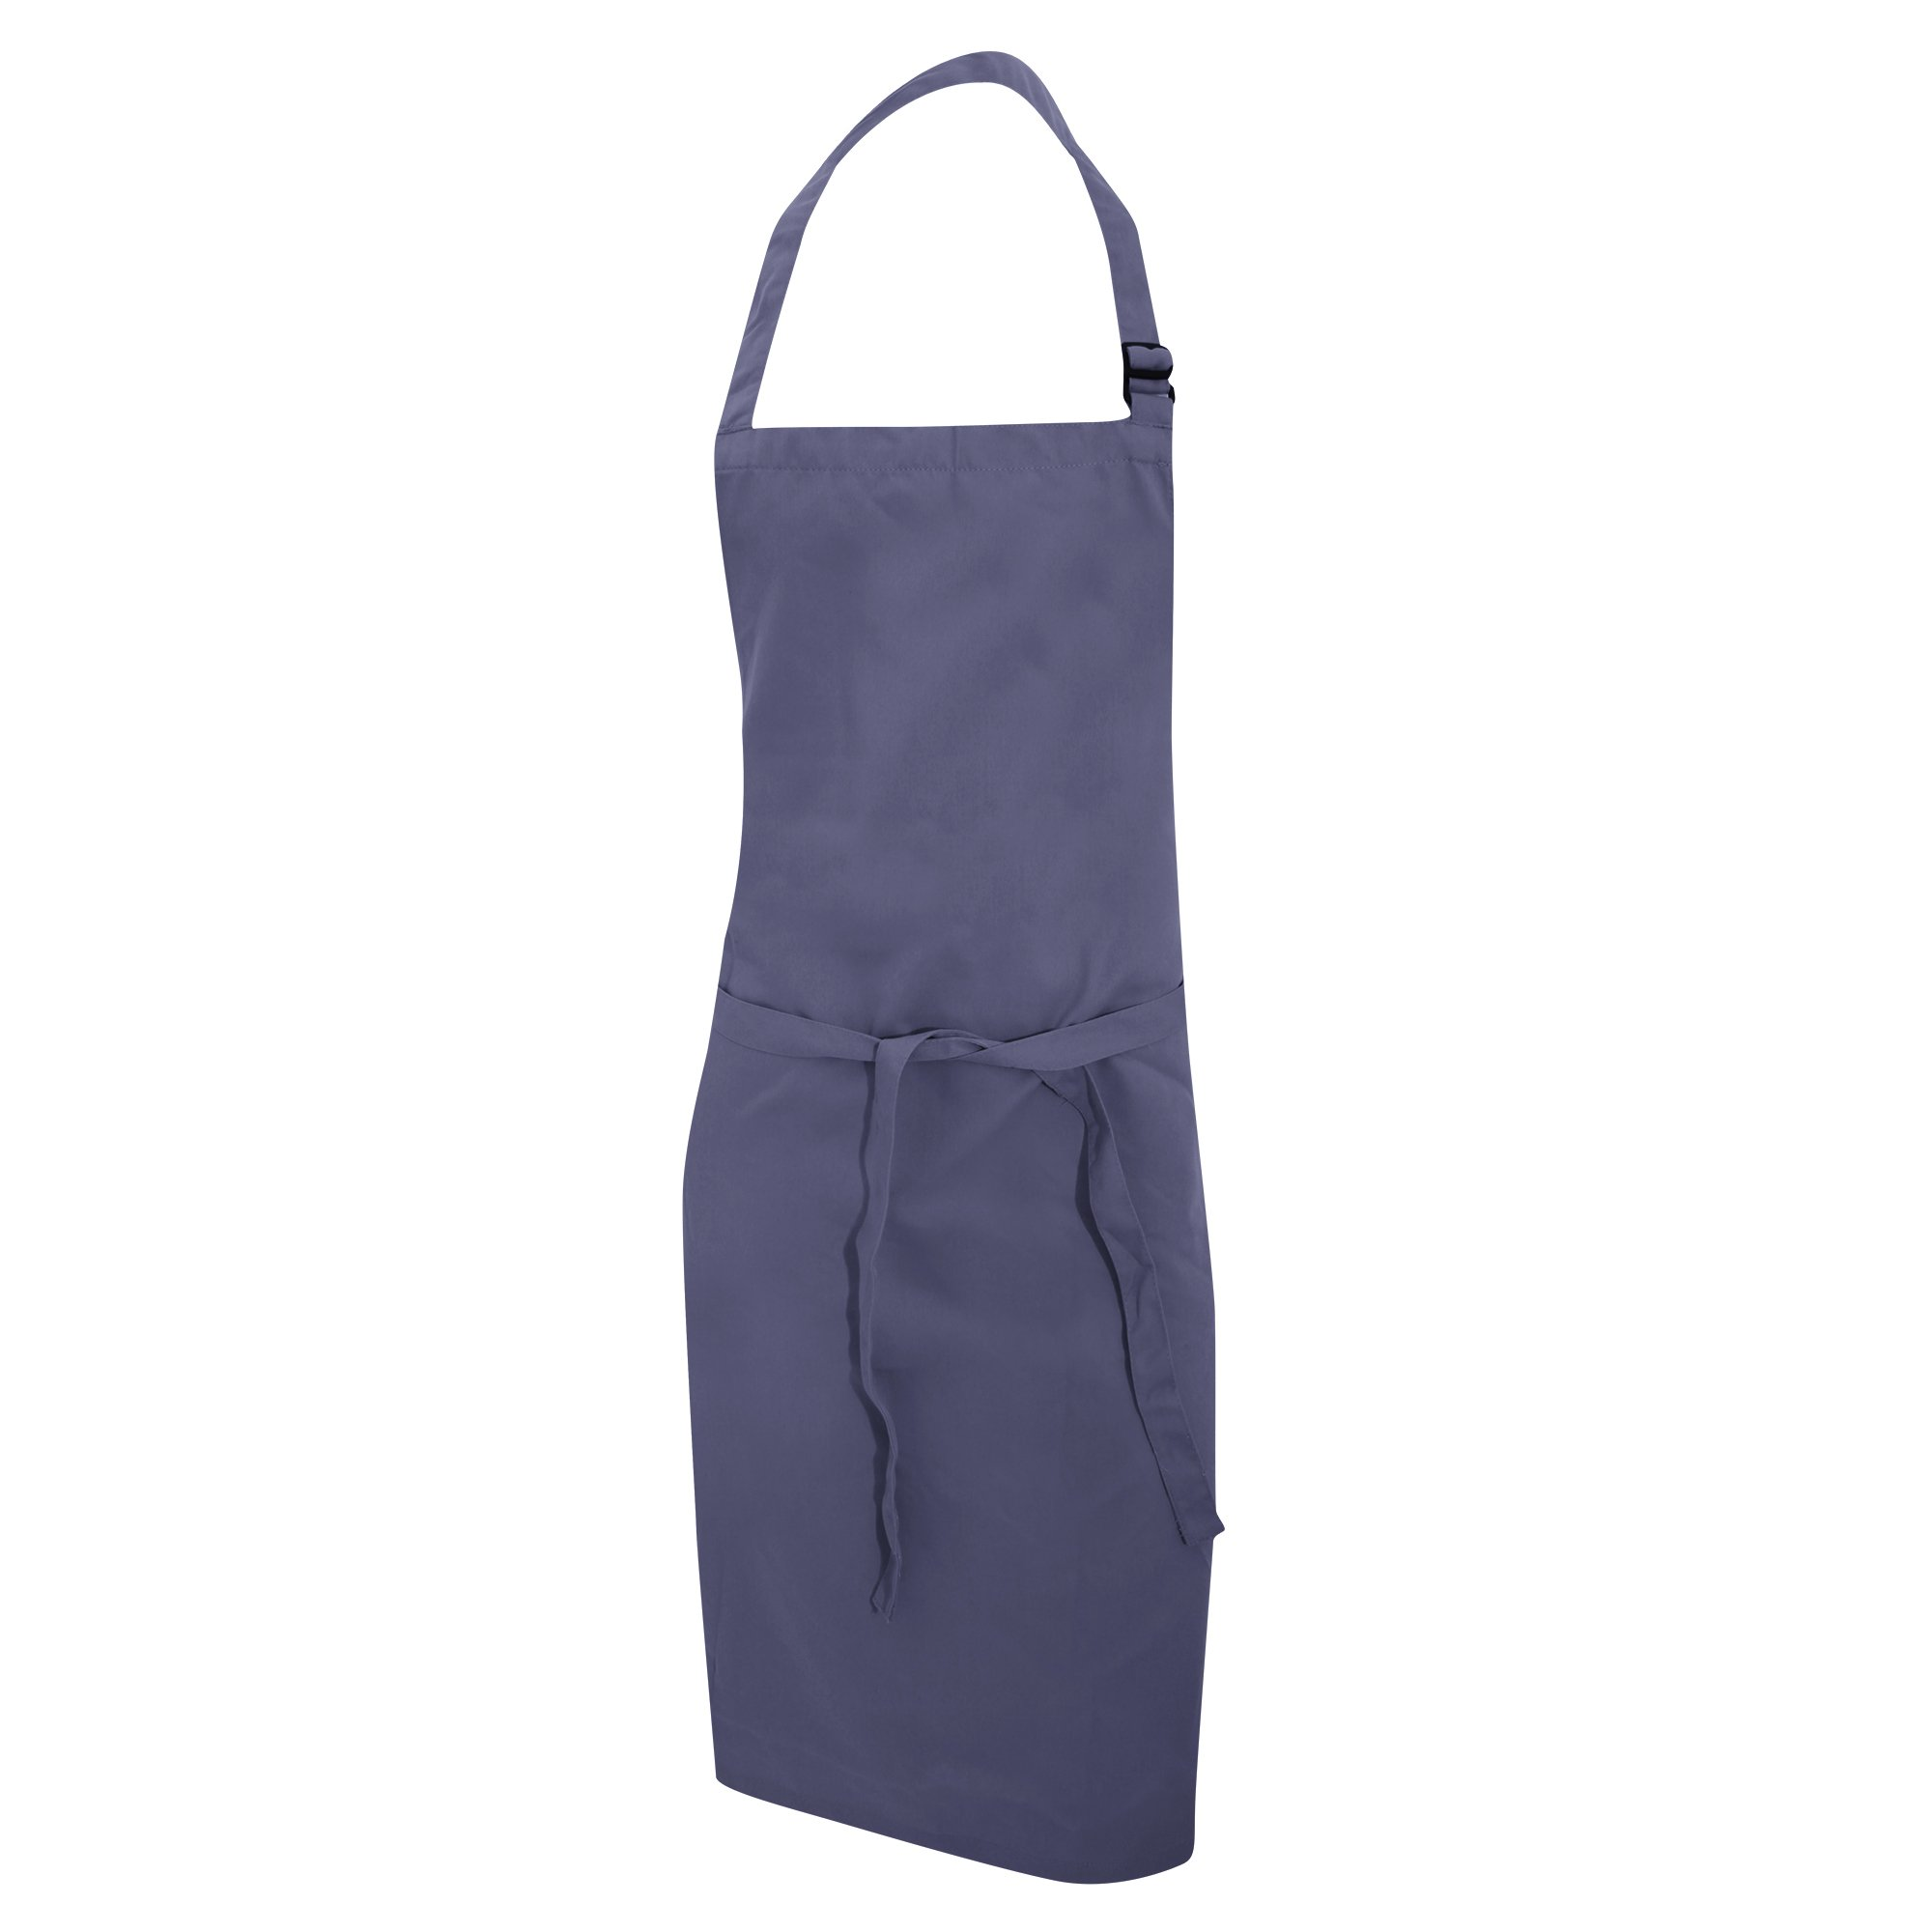 Dennys Multicoloured Bib Apron 28x36ins (One Size) (Storm Grey)